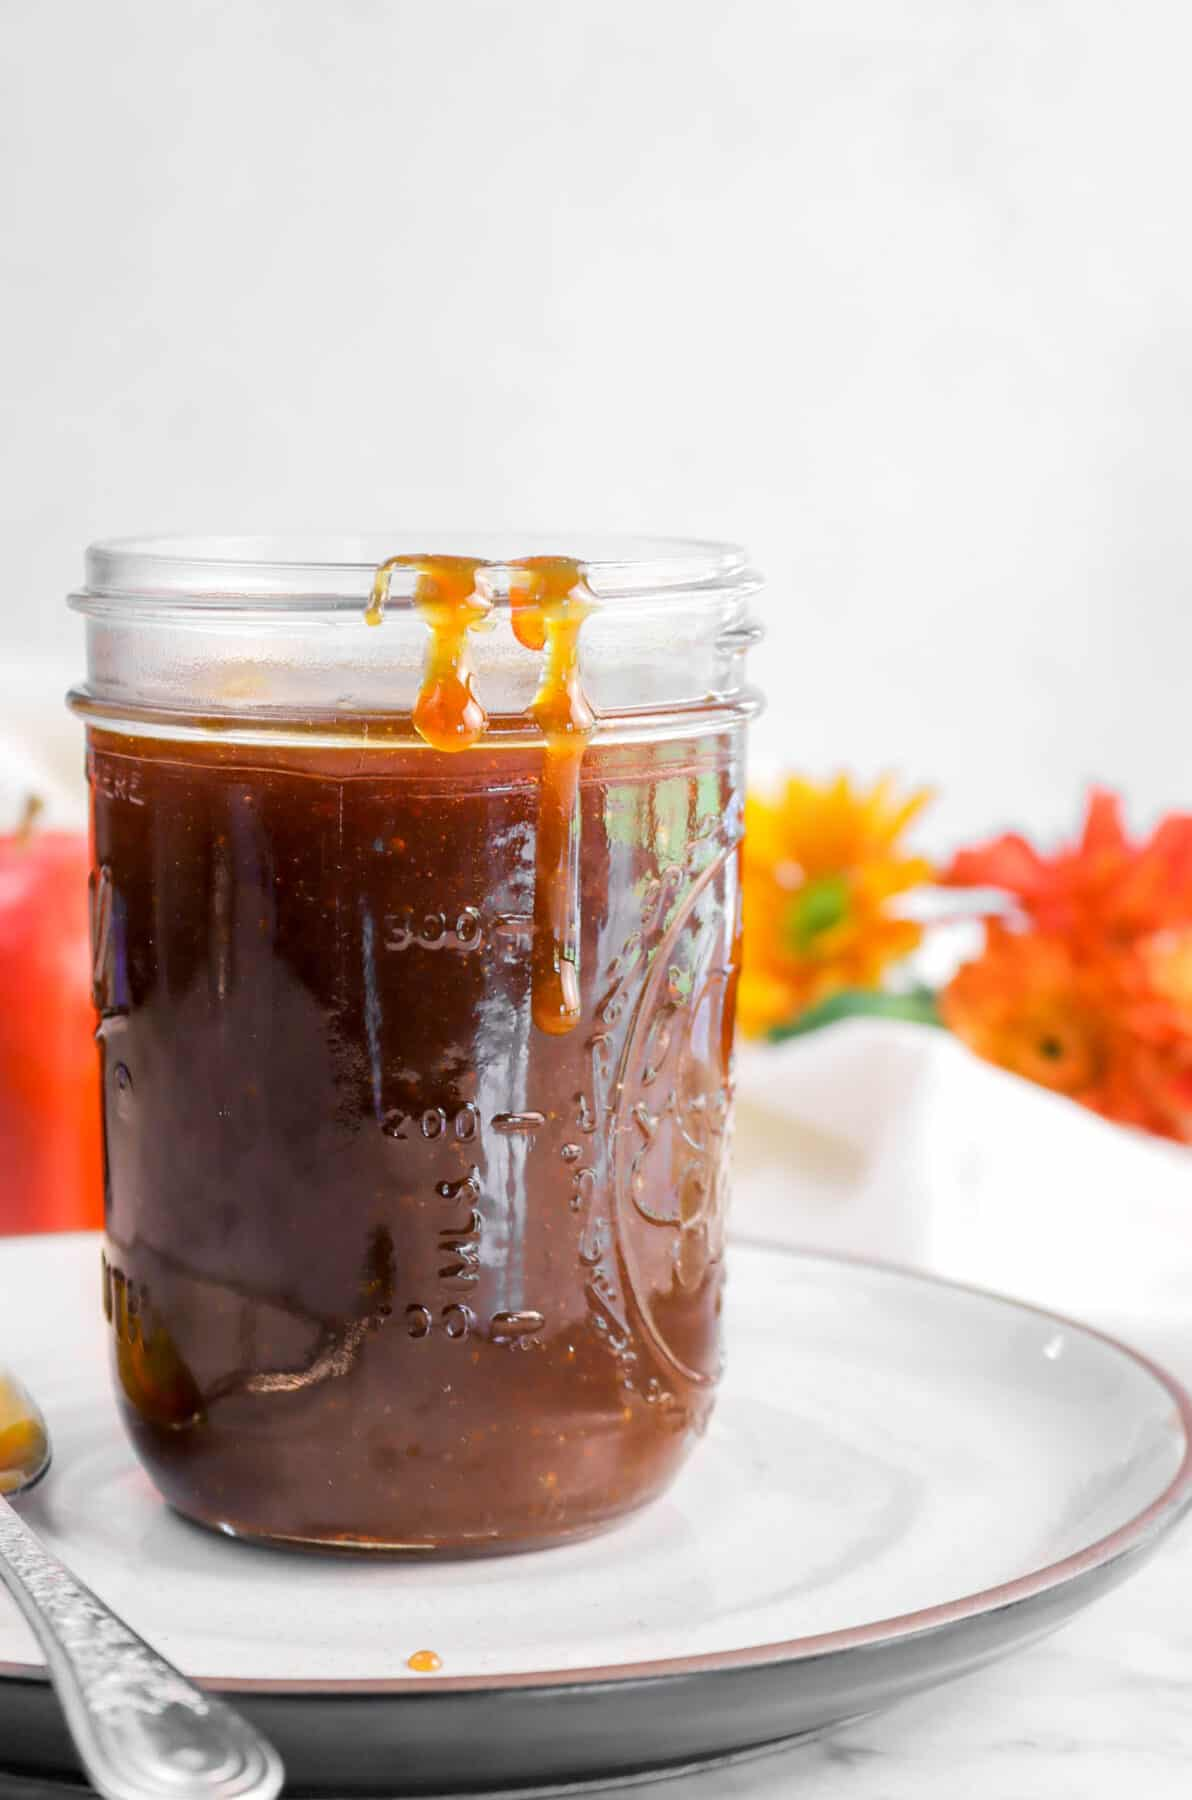 boiled cider in a jar on a white plate with flowers